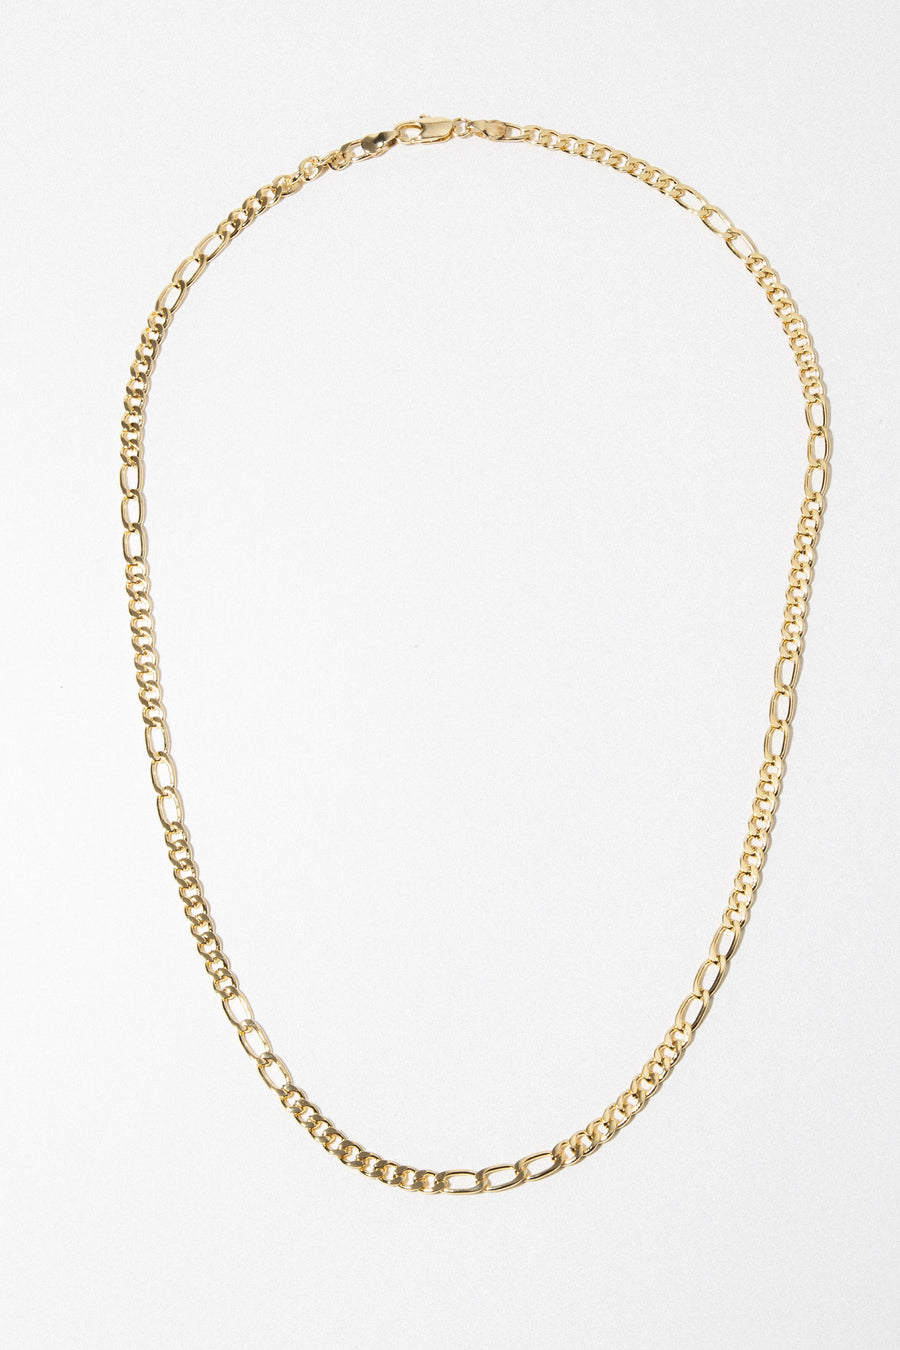 Goddess Jewelry Gold / 20 Inches Dorato Unisex Chain